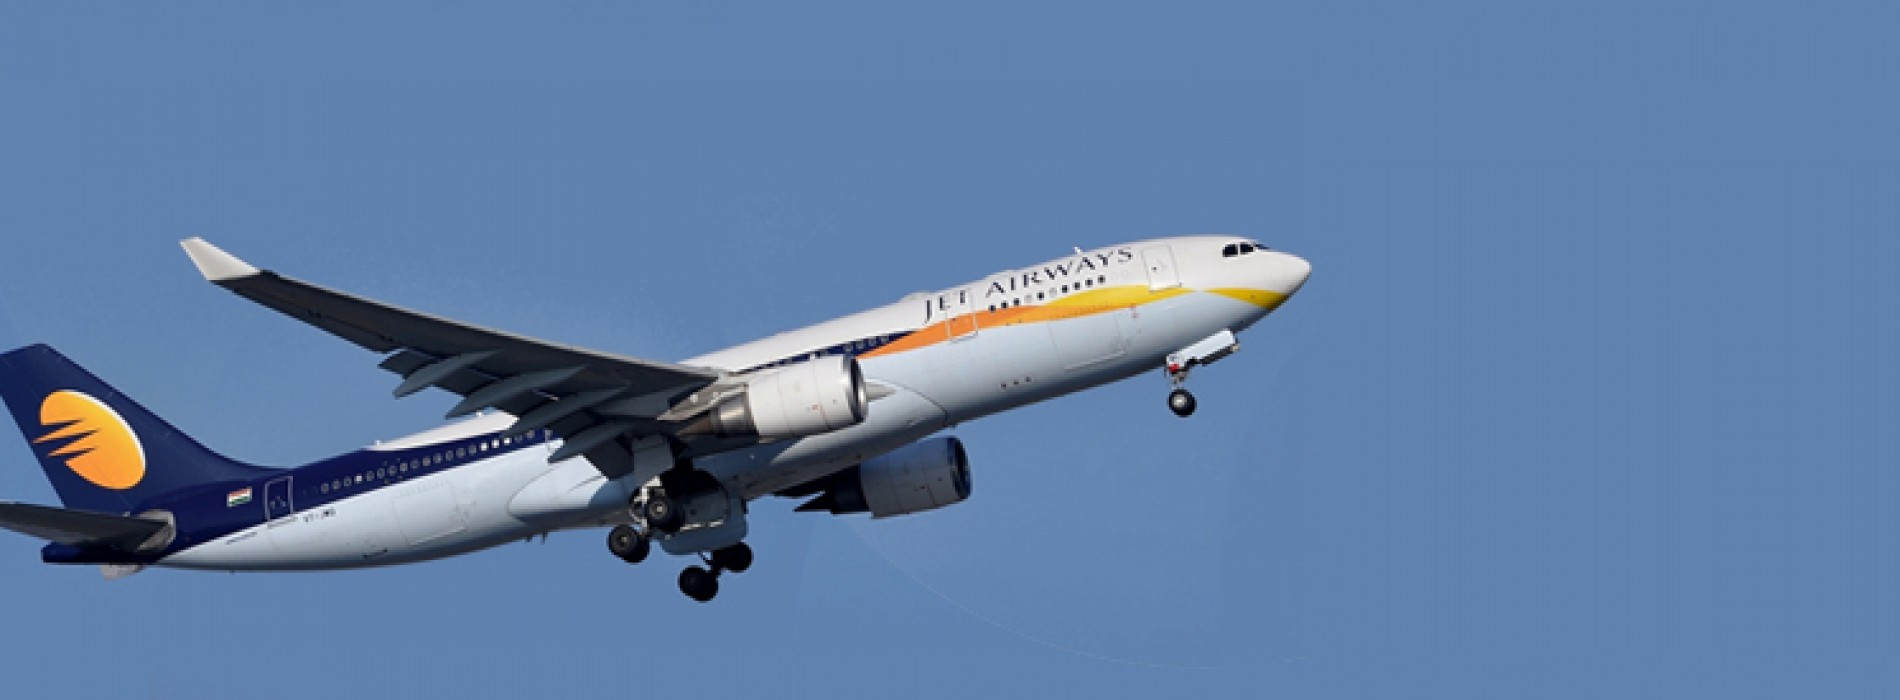 Jet Airways to start daily flights to Amsterdam from March 27